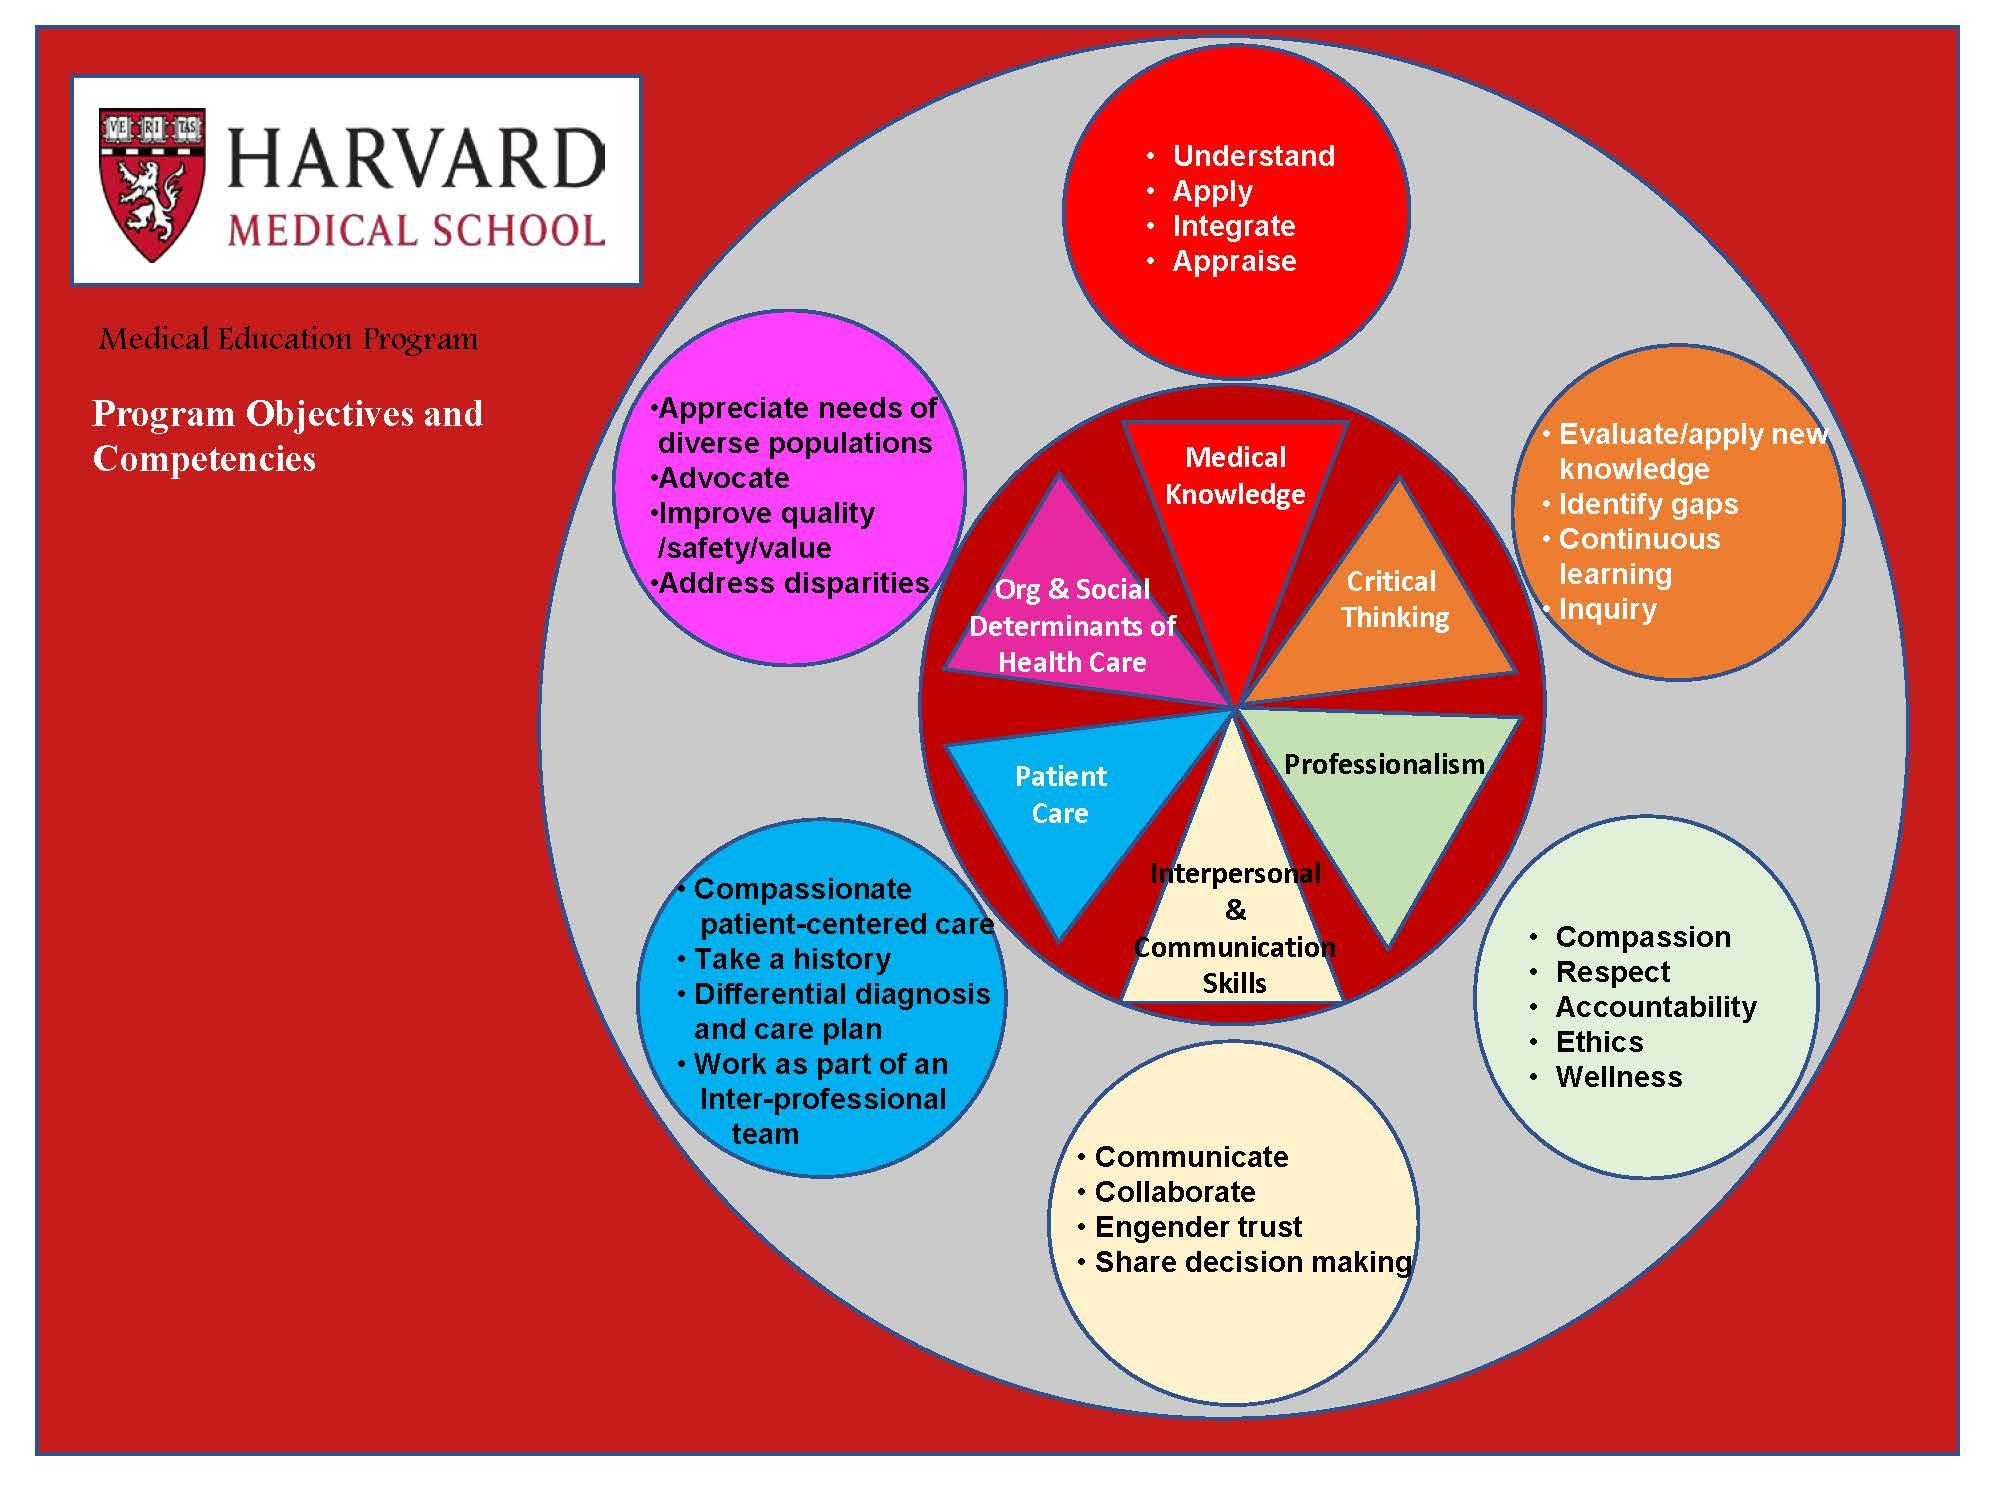 HMS Competencies and program objectives